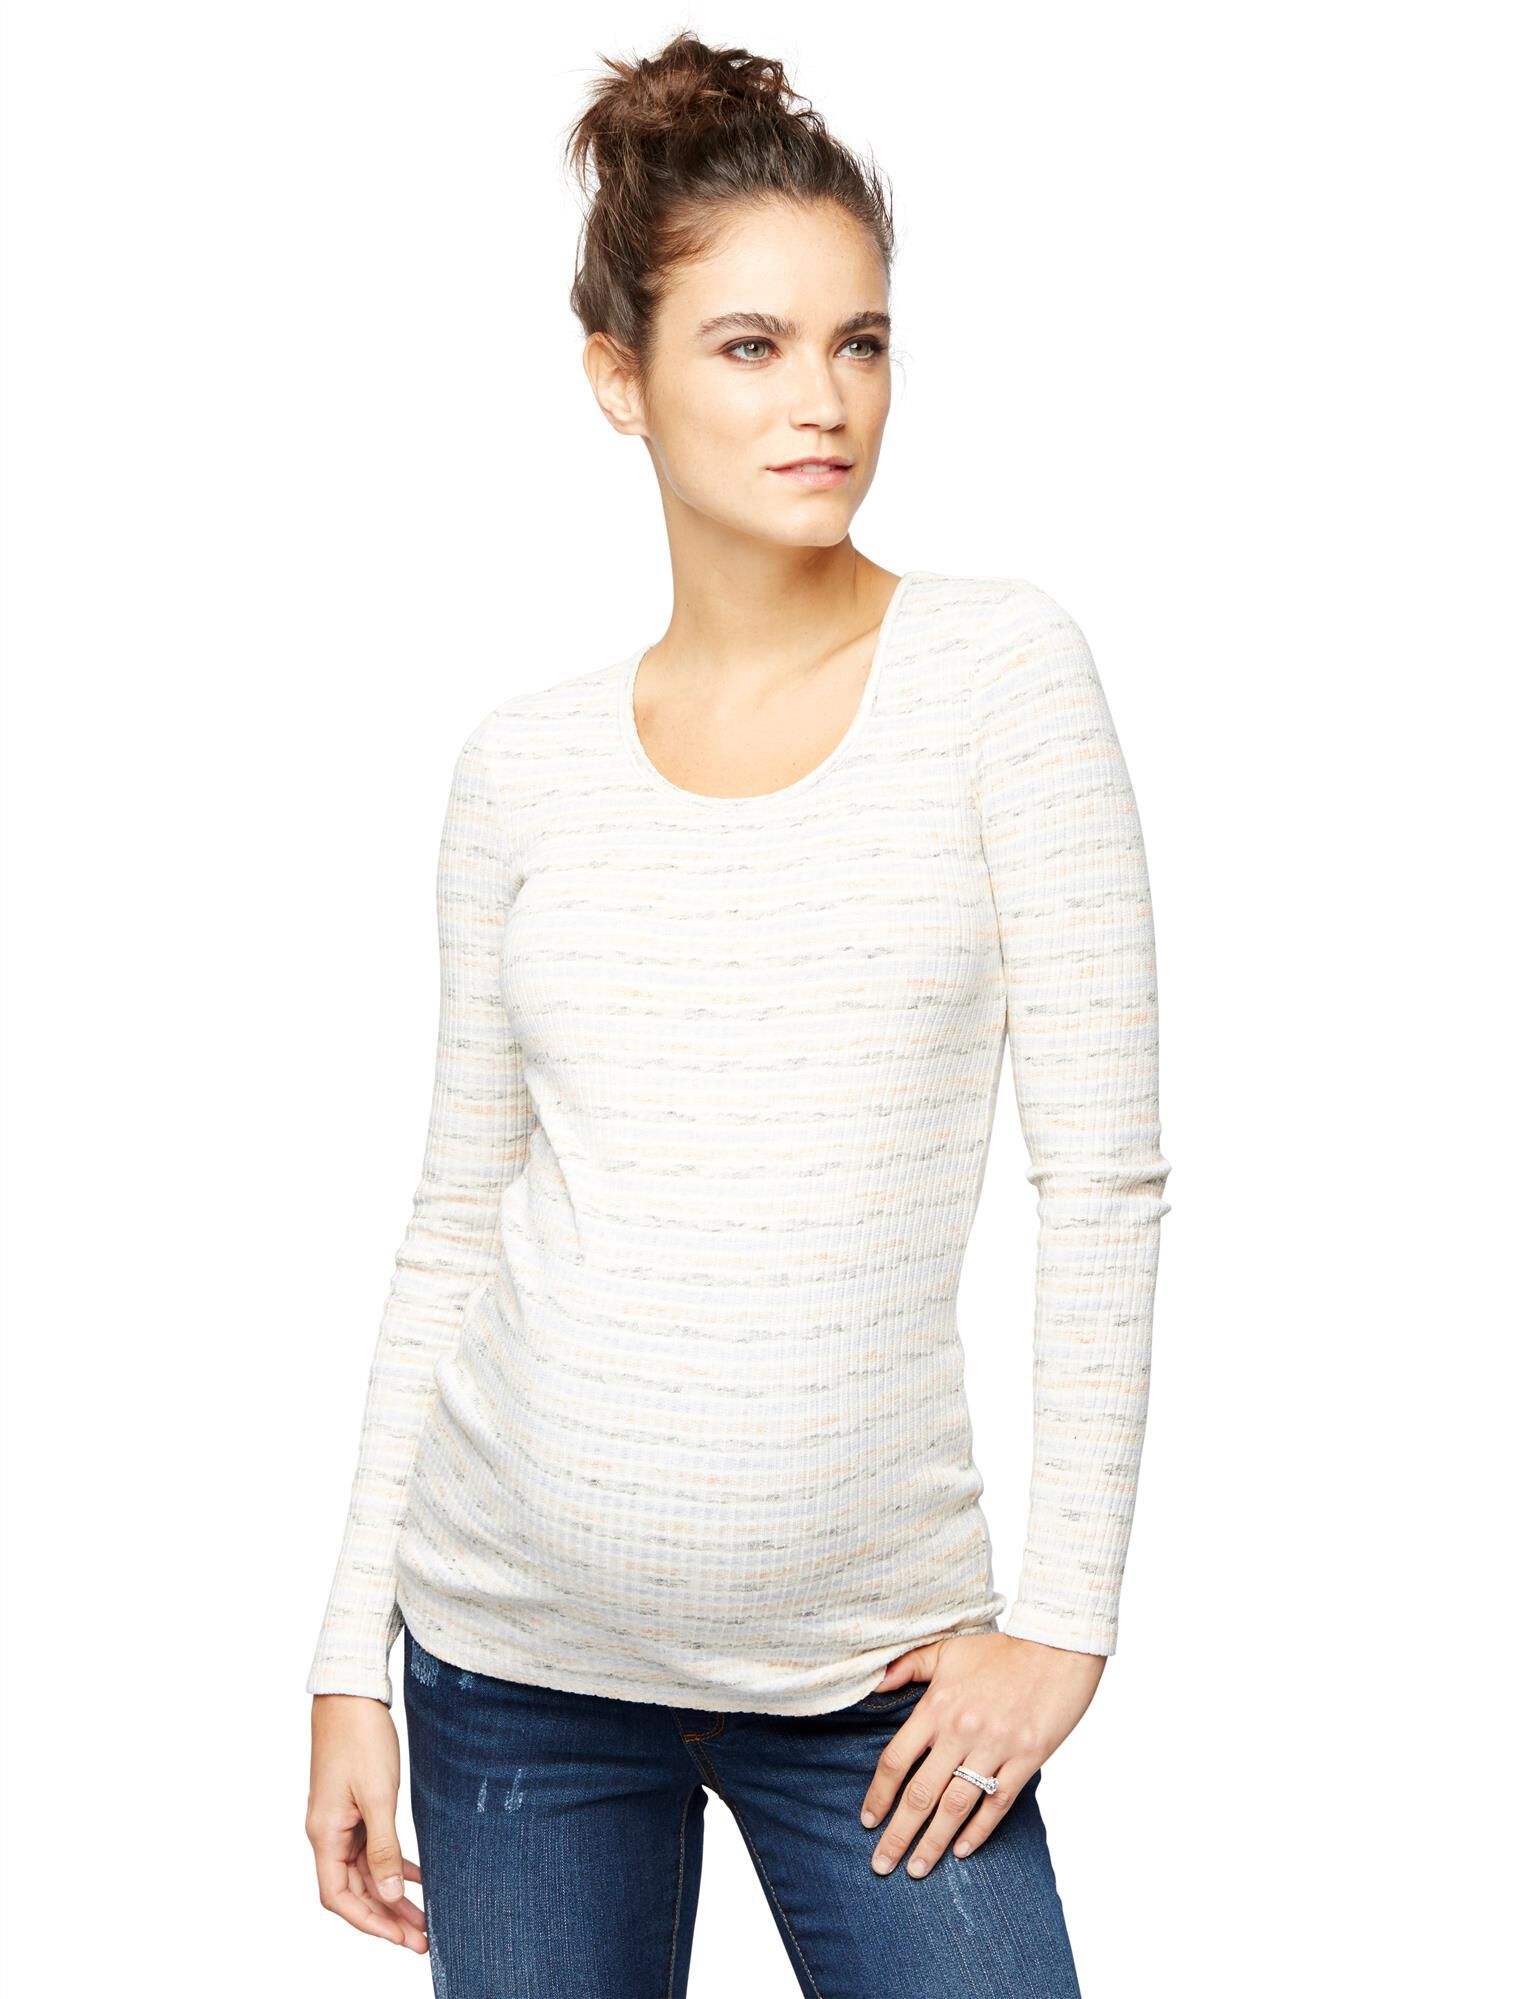 Luxe Essentials Rib Knit Maternity Top